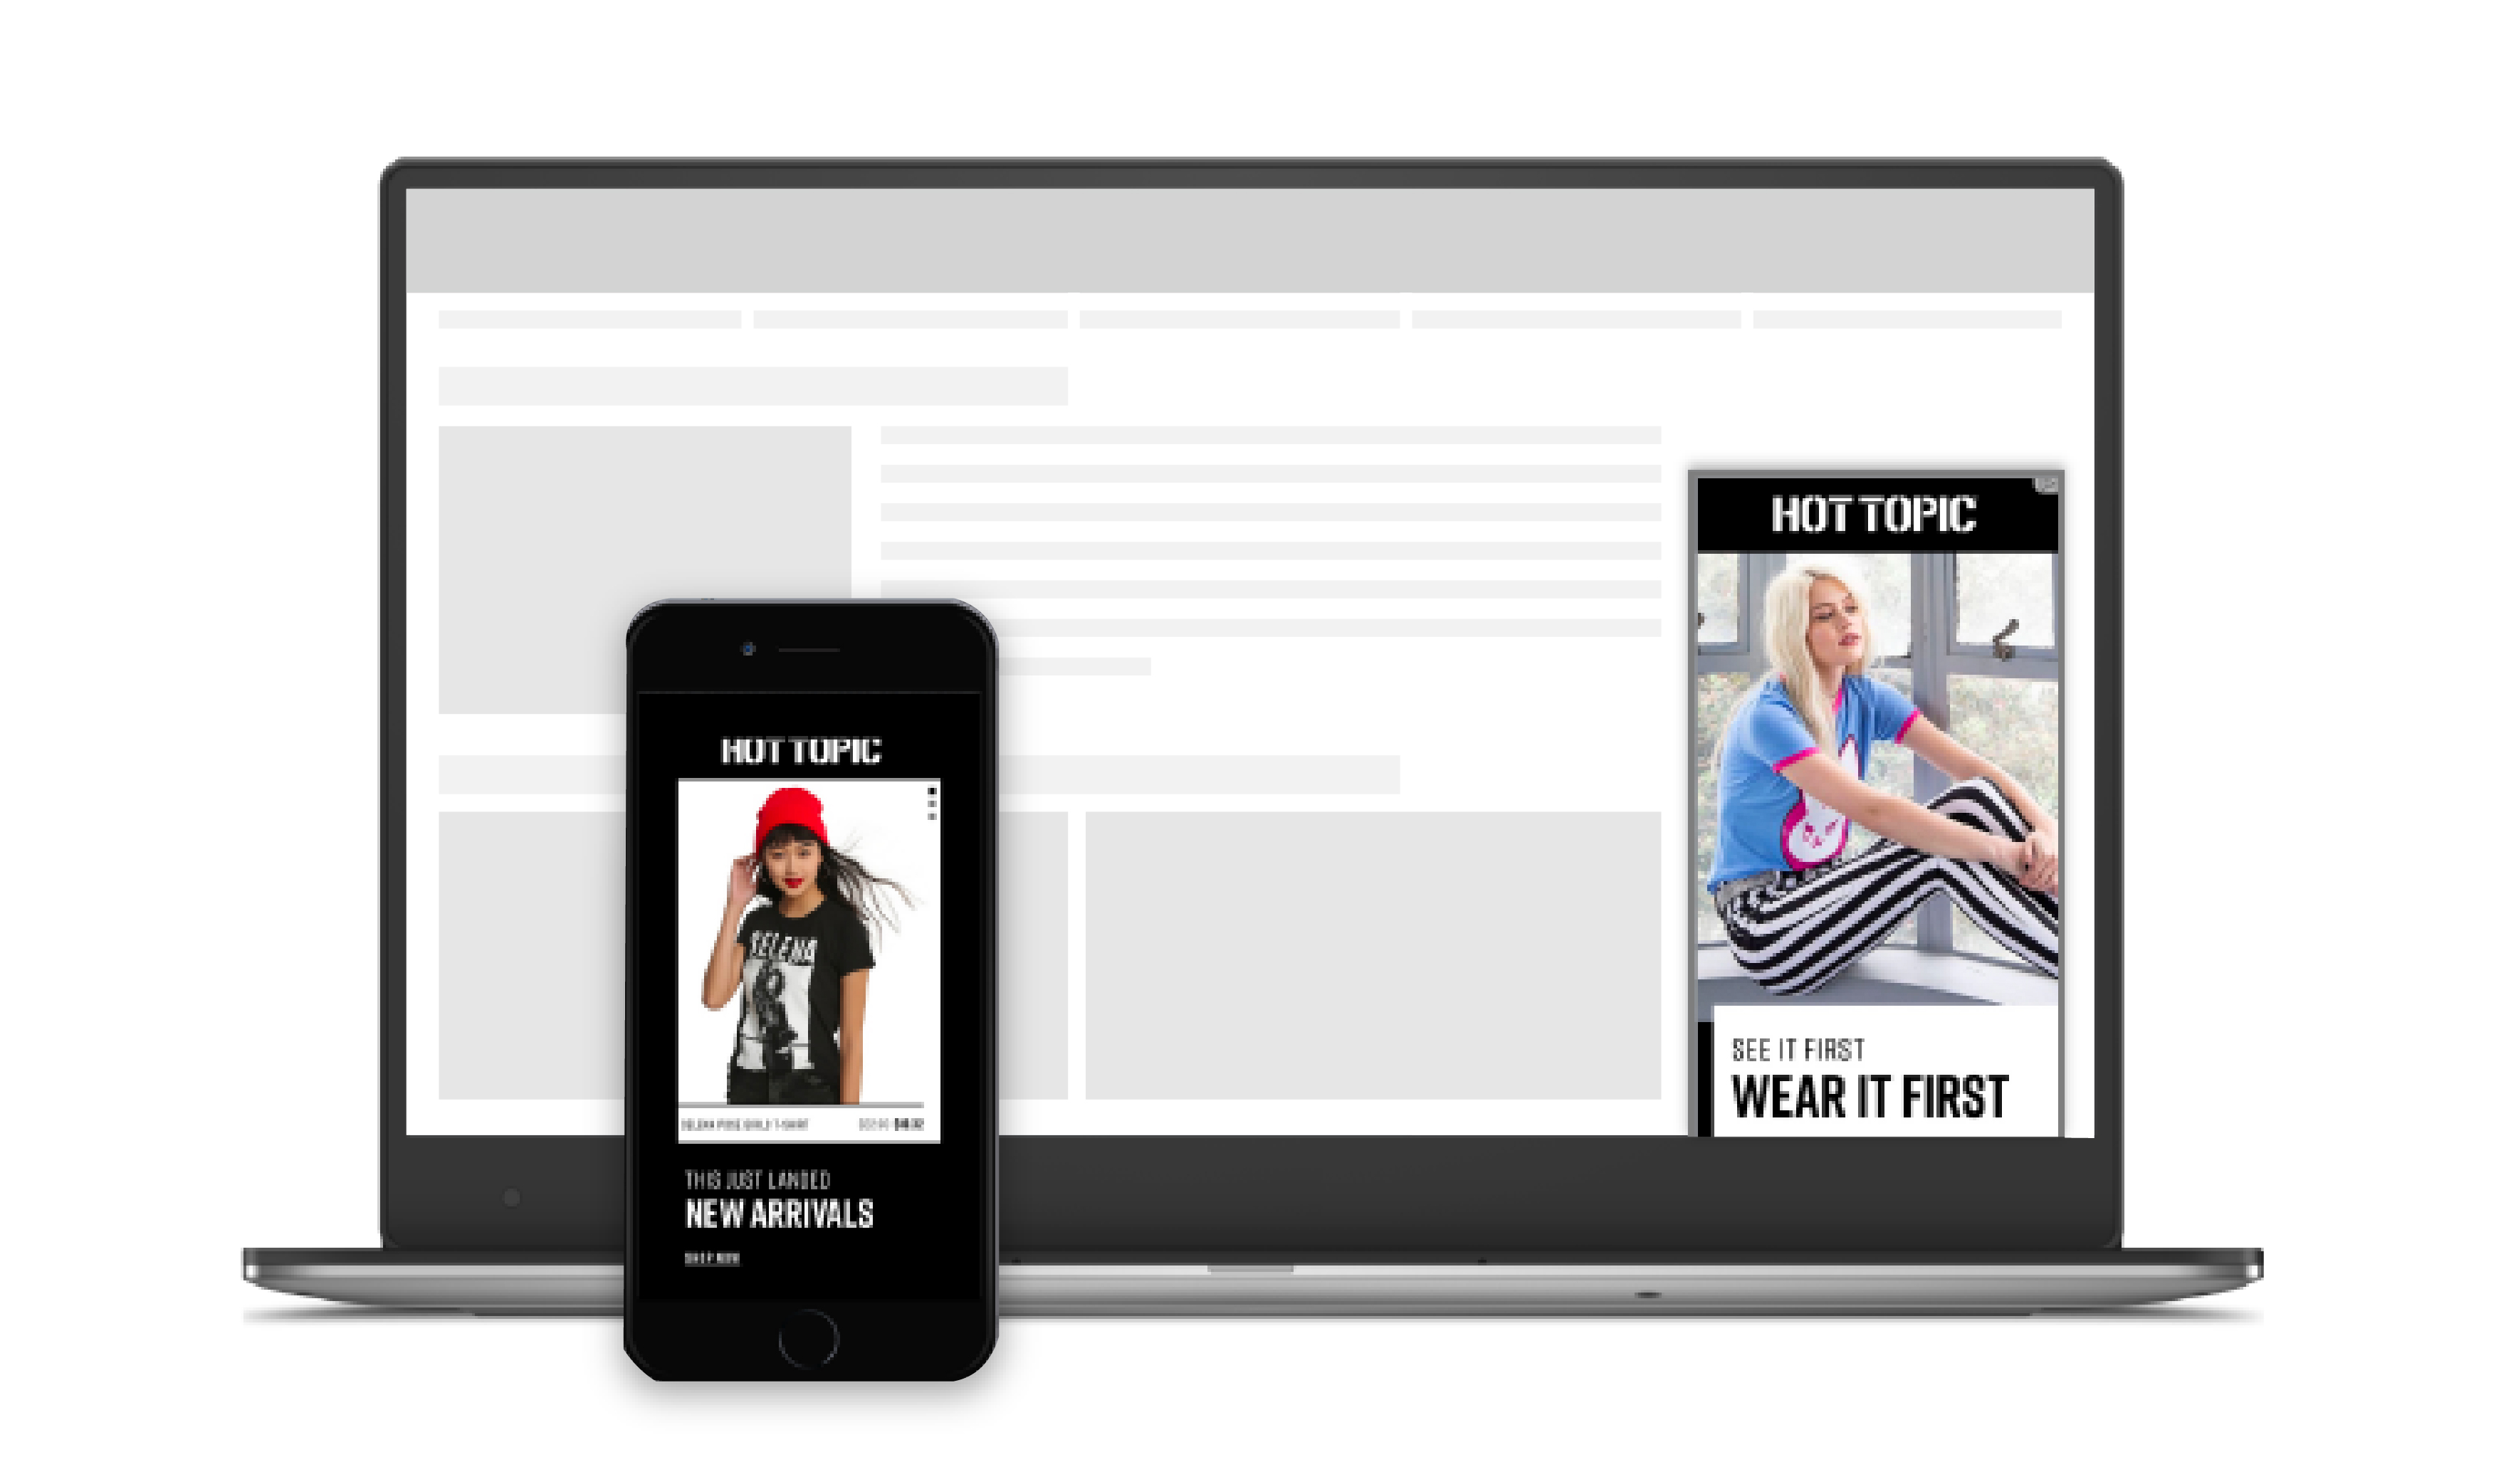 Hot Topic display ads on desktop and mobile device